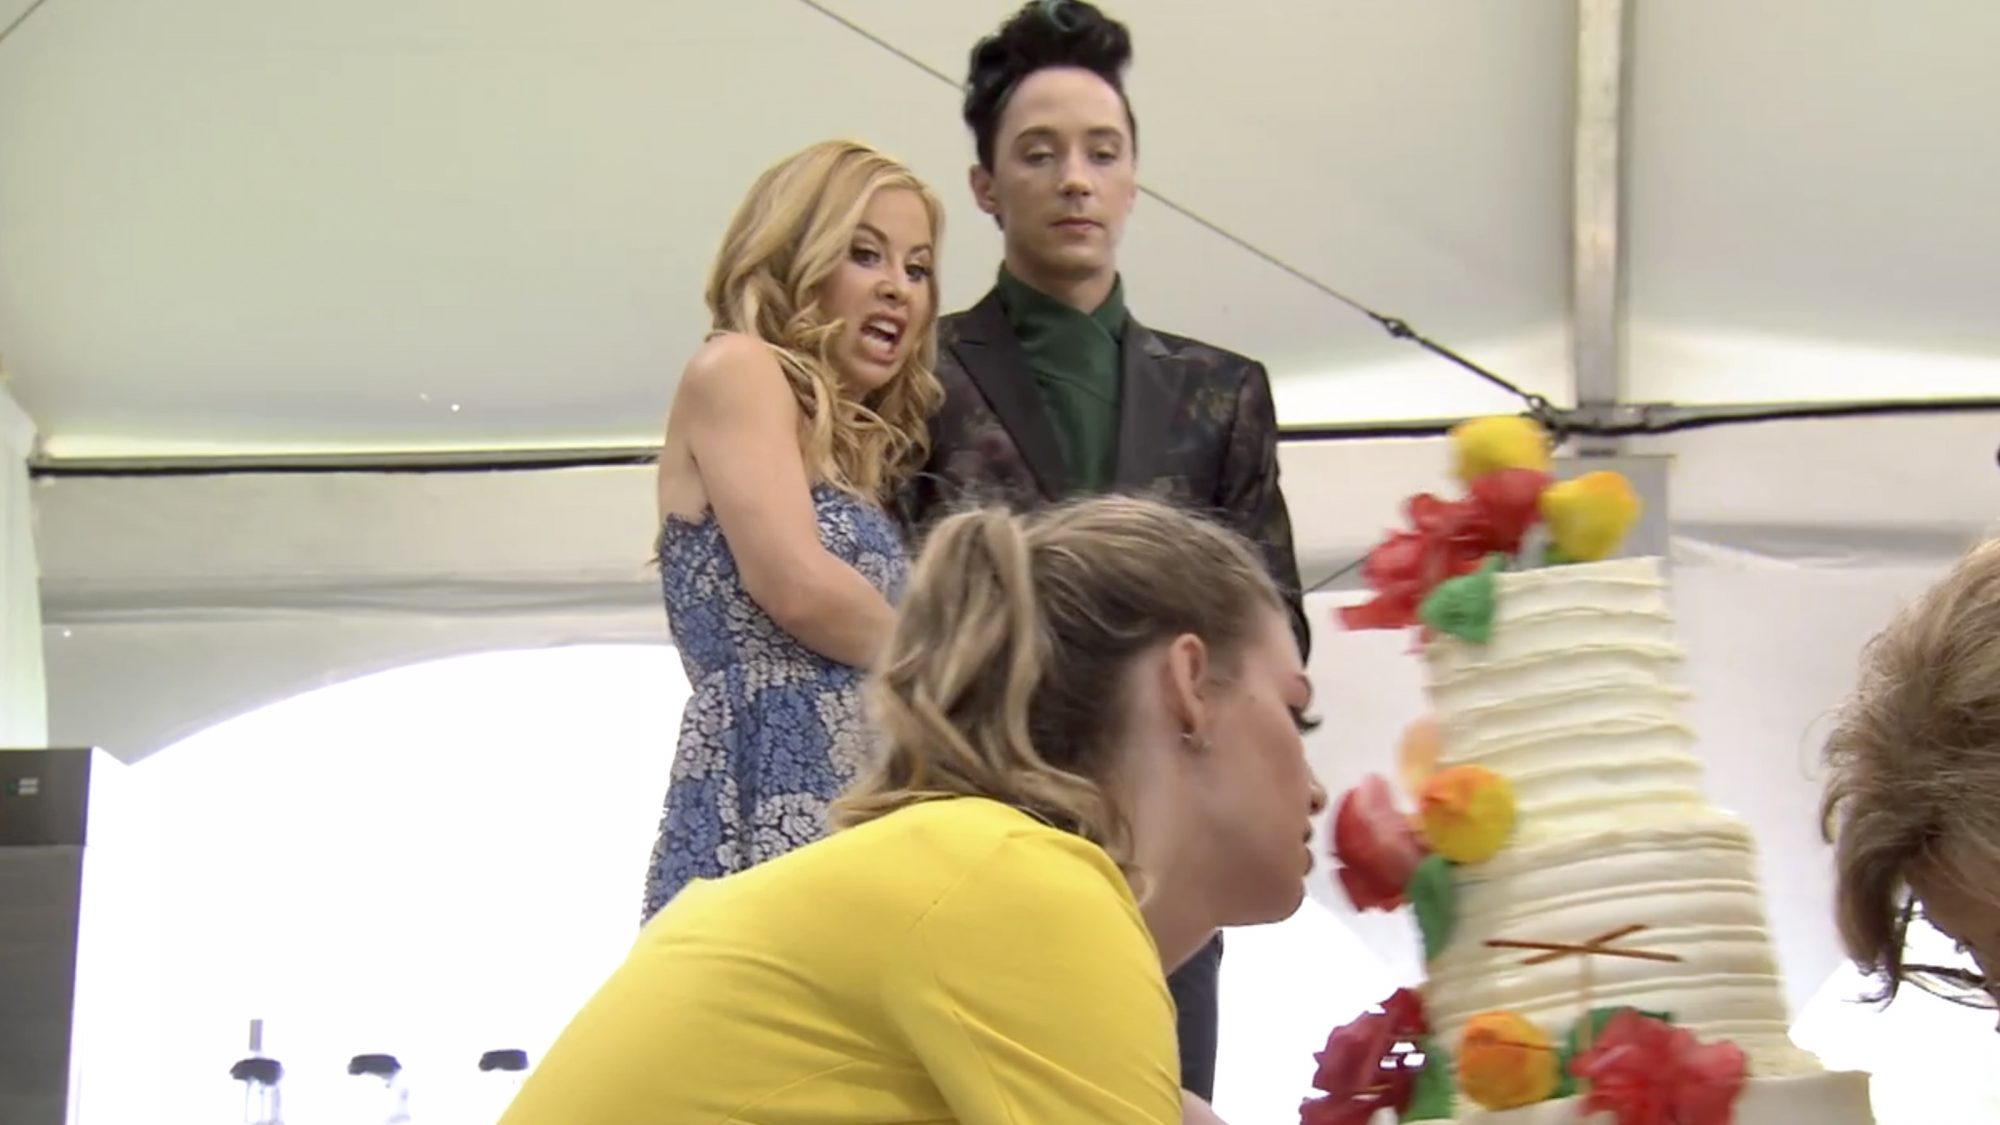 Hosts Tara Lipinski and Johnny Weir, as seen on Wedding Cake Championship, Season 2. (screen grab) https://timeincsecure-a.akamaihd.net/rtmp_uds/219646971/201905/2101/219646971_6039464062001_6039465909001.mp4?pubId=219646971&videoId=6039465909001 CR: Food Network